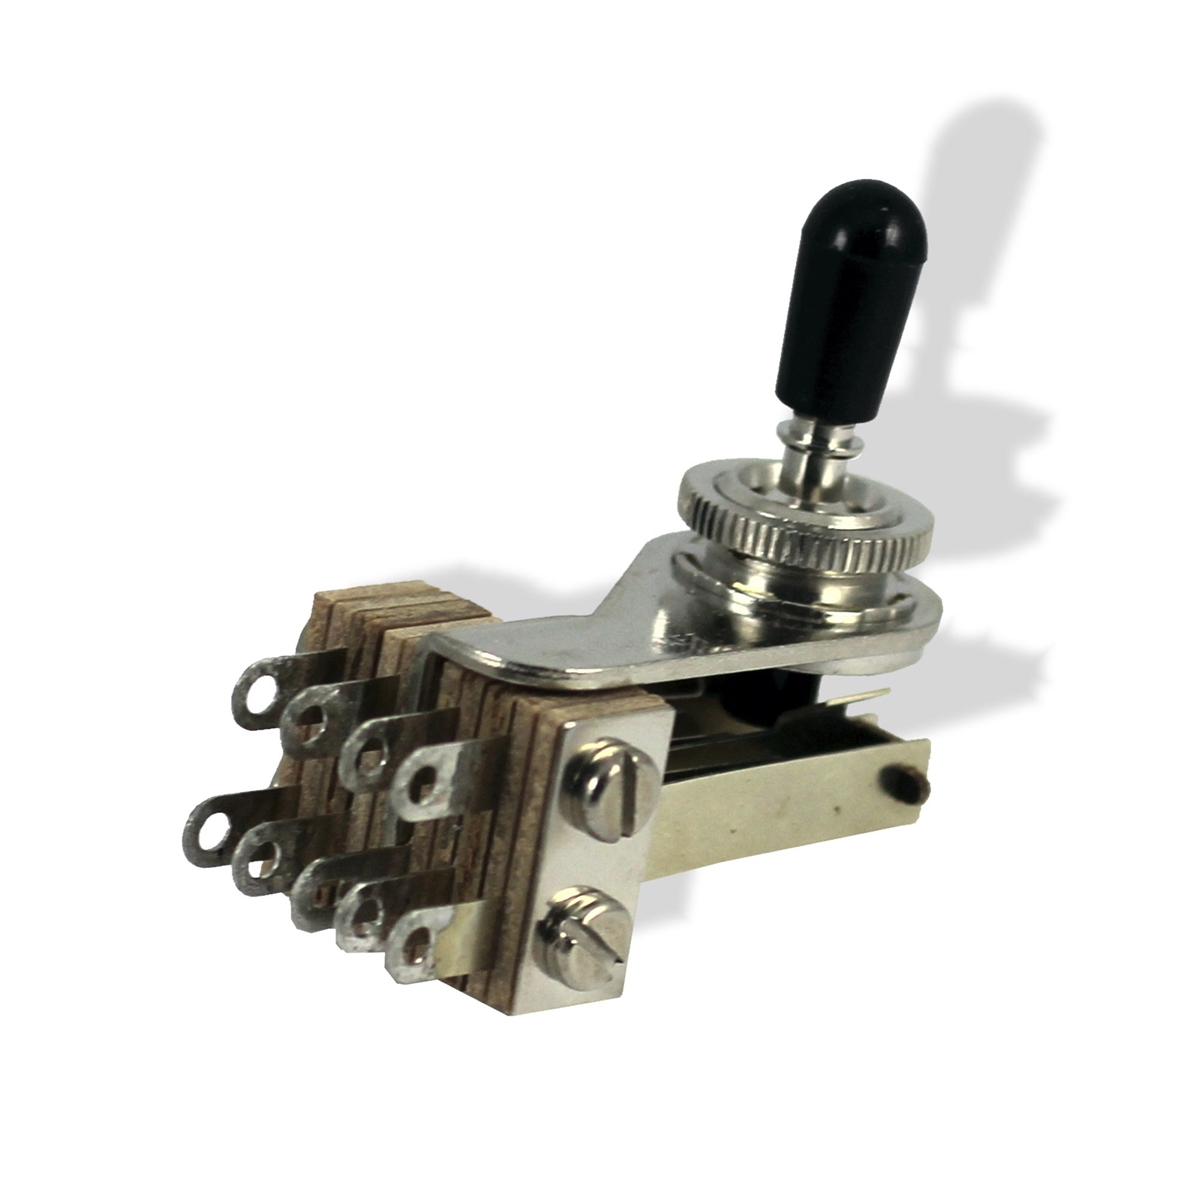 hight resolution of toggle 3 way switch black knob angle